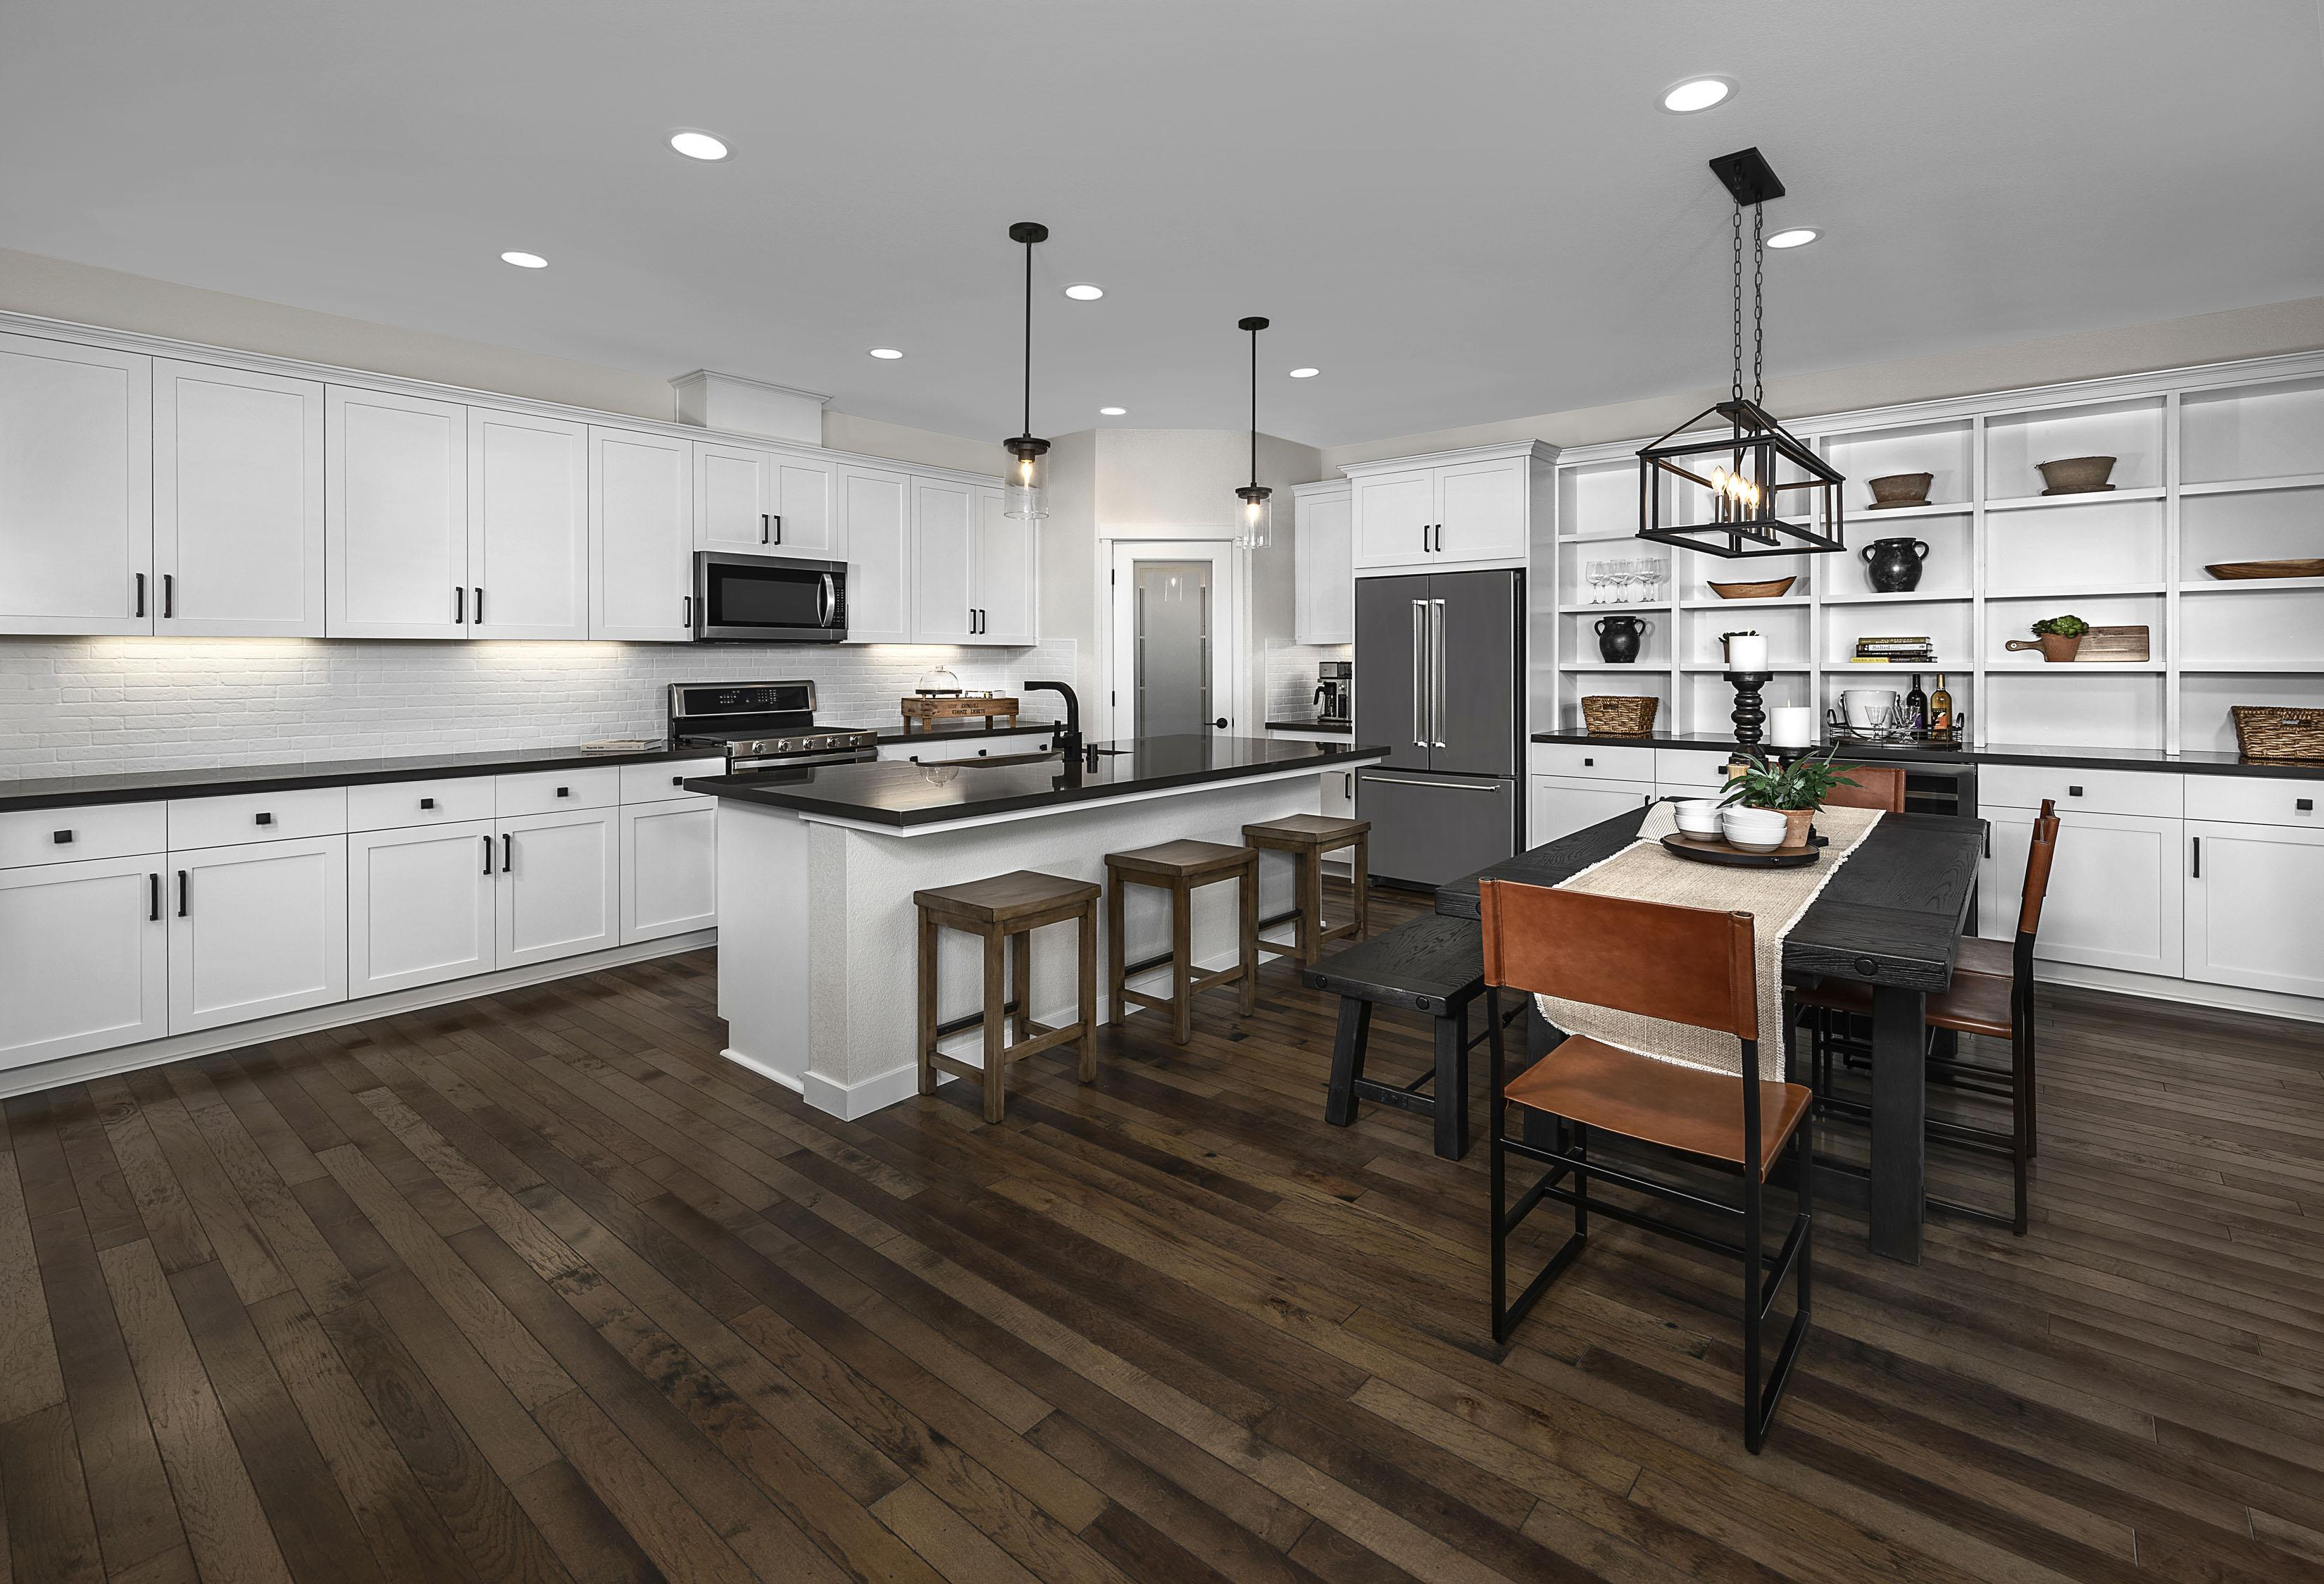 Kitchen featured in the Catalina Residence 3 By Kiper Homes in Stockton-Lodi, CA